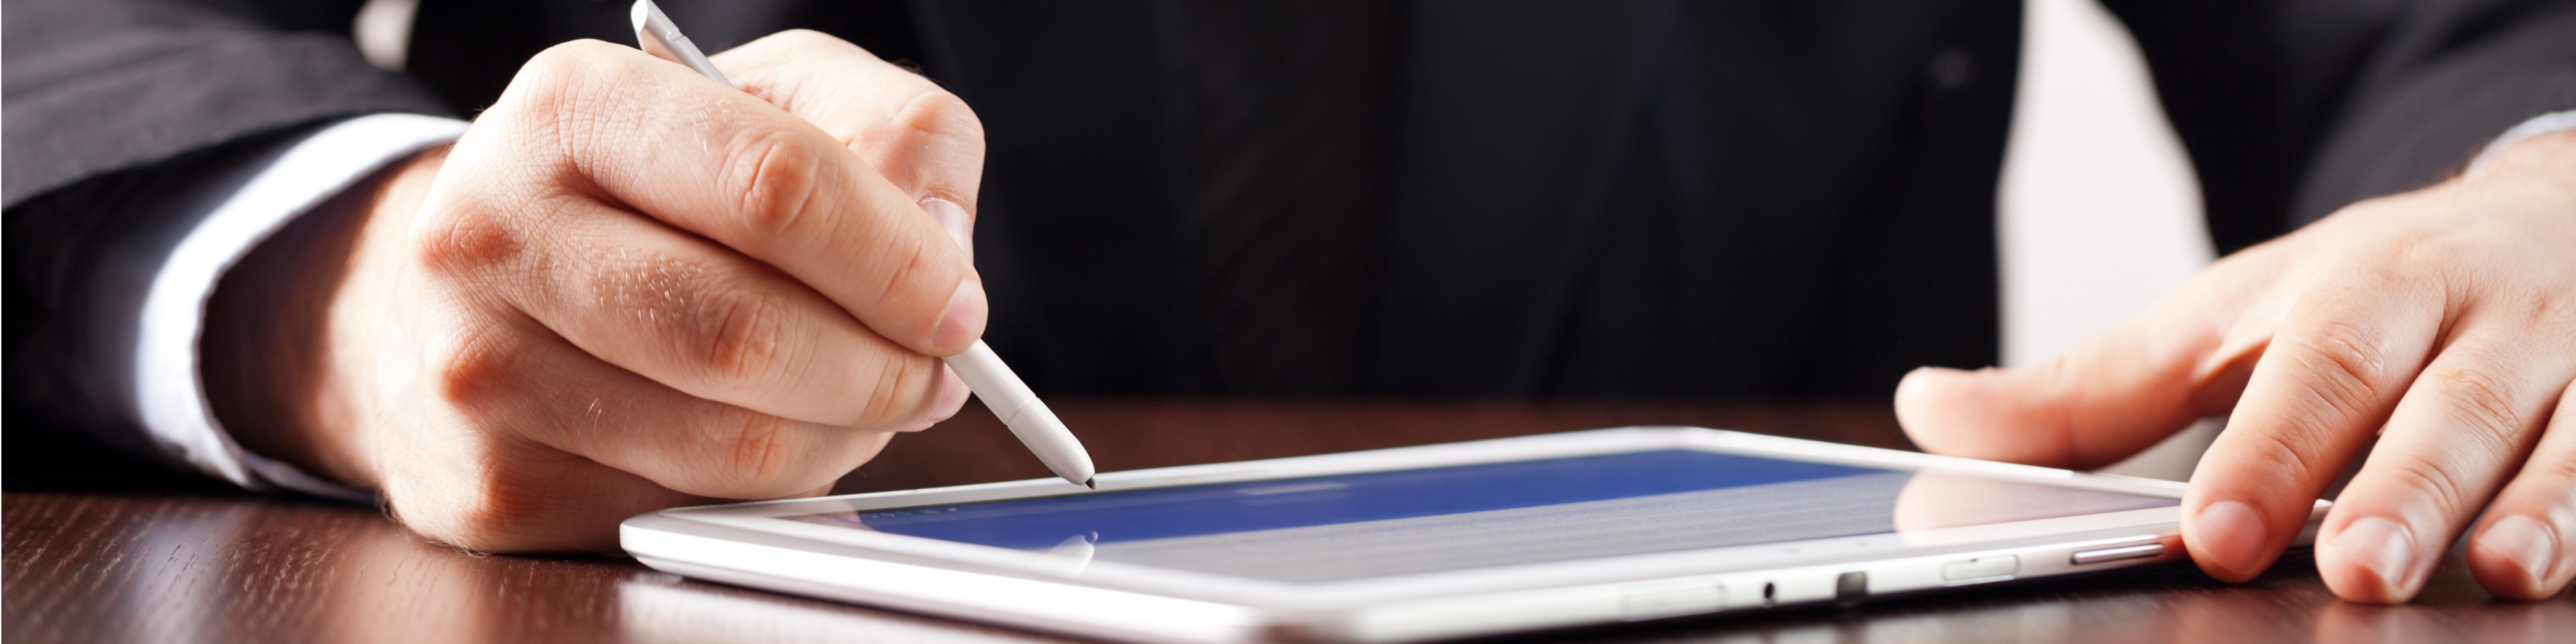 Webinar: Digital Signatures - What you Need to Know for Tax Season